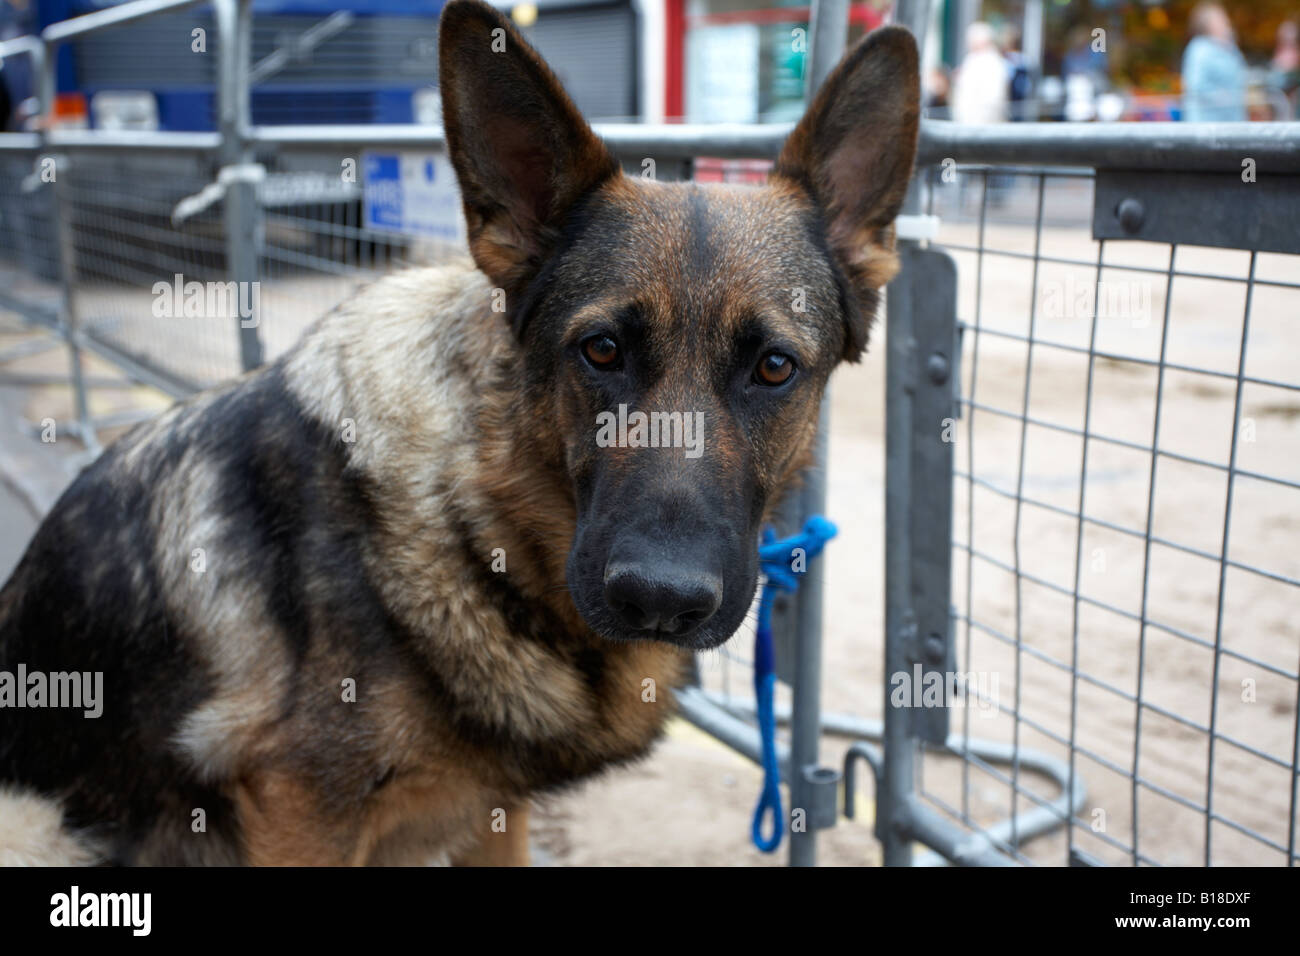 alsatian german shepherd dog tied to fence waiting for owner ballyclare northern ireland Stock Photo